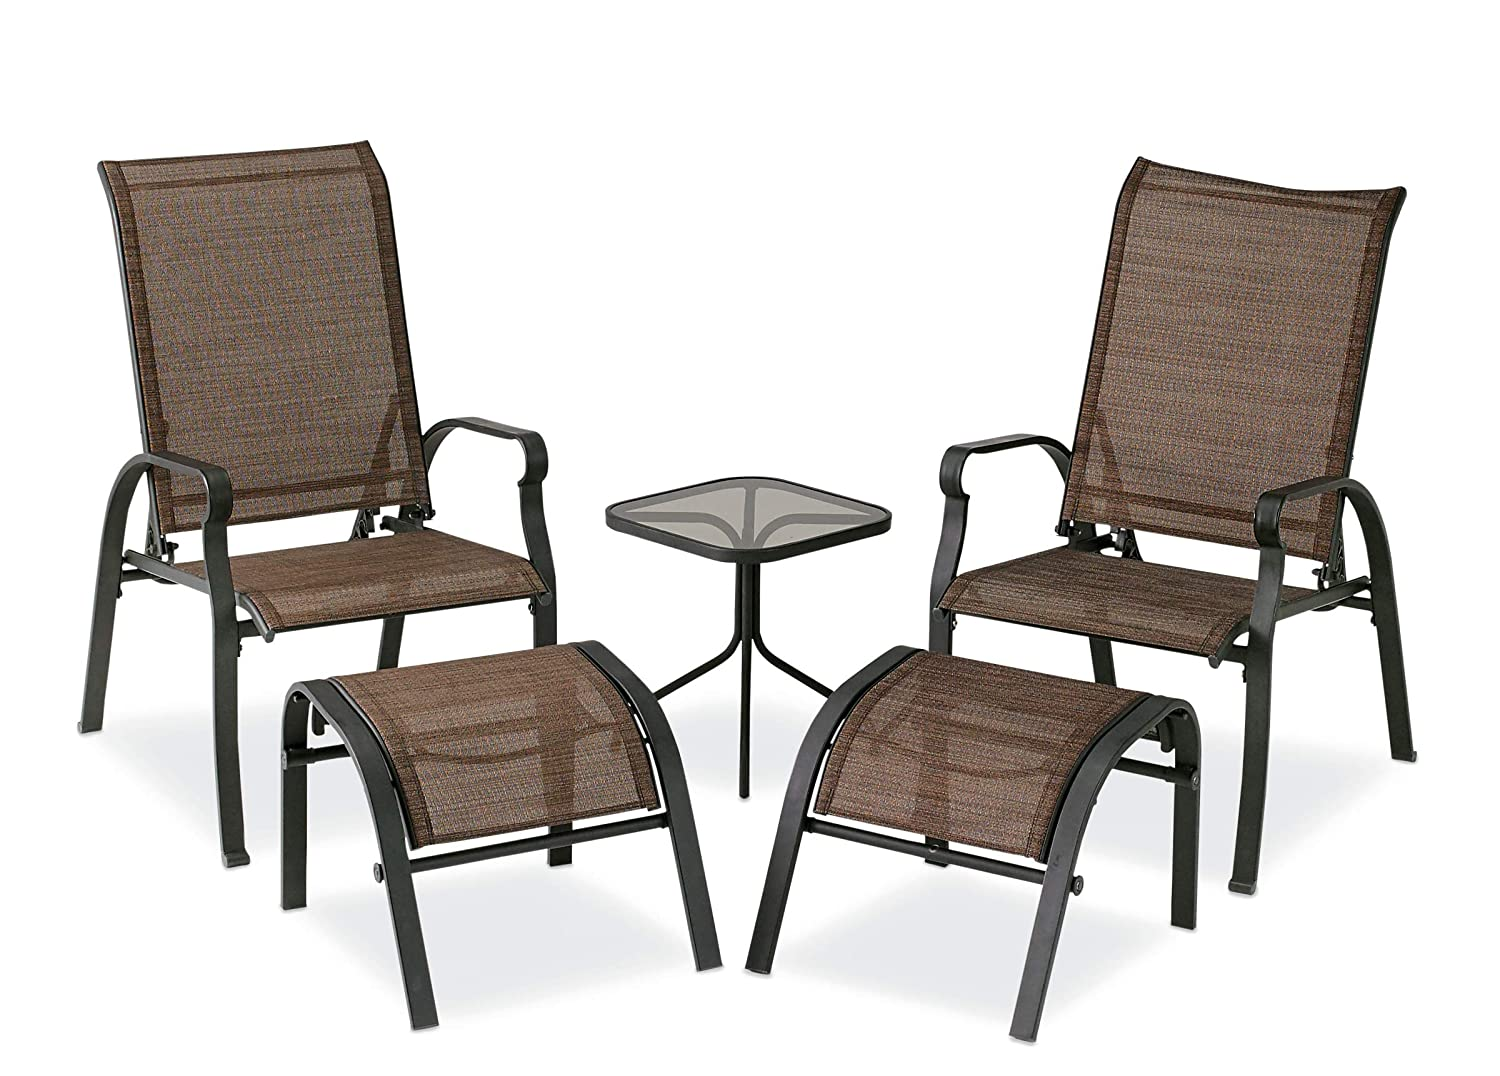 Fantastic Courtyard Creations Kts7377 Four Seasons Verona 5 Piece Brown Sling Outdoor Set Ocoug Best Dining Table And Chair Ideas Images Ocougorg